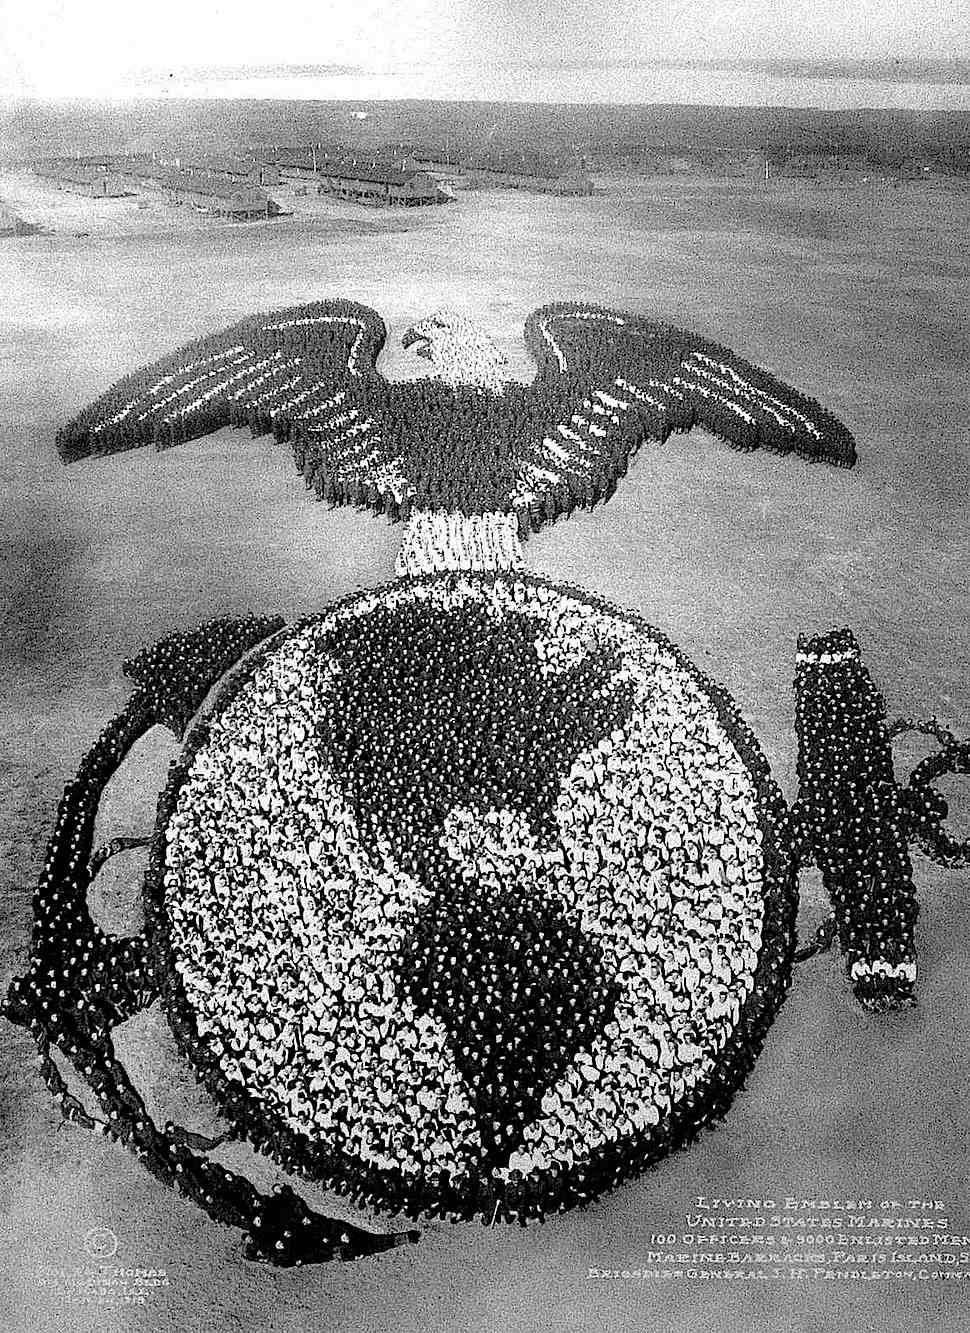 1915 USA marines in a marine emblem, a giant group aerial photograph